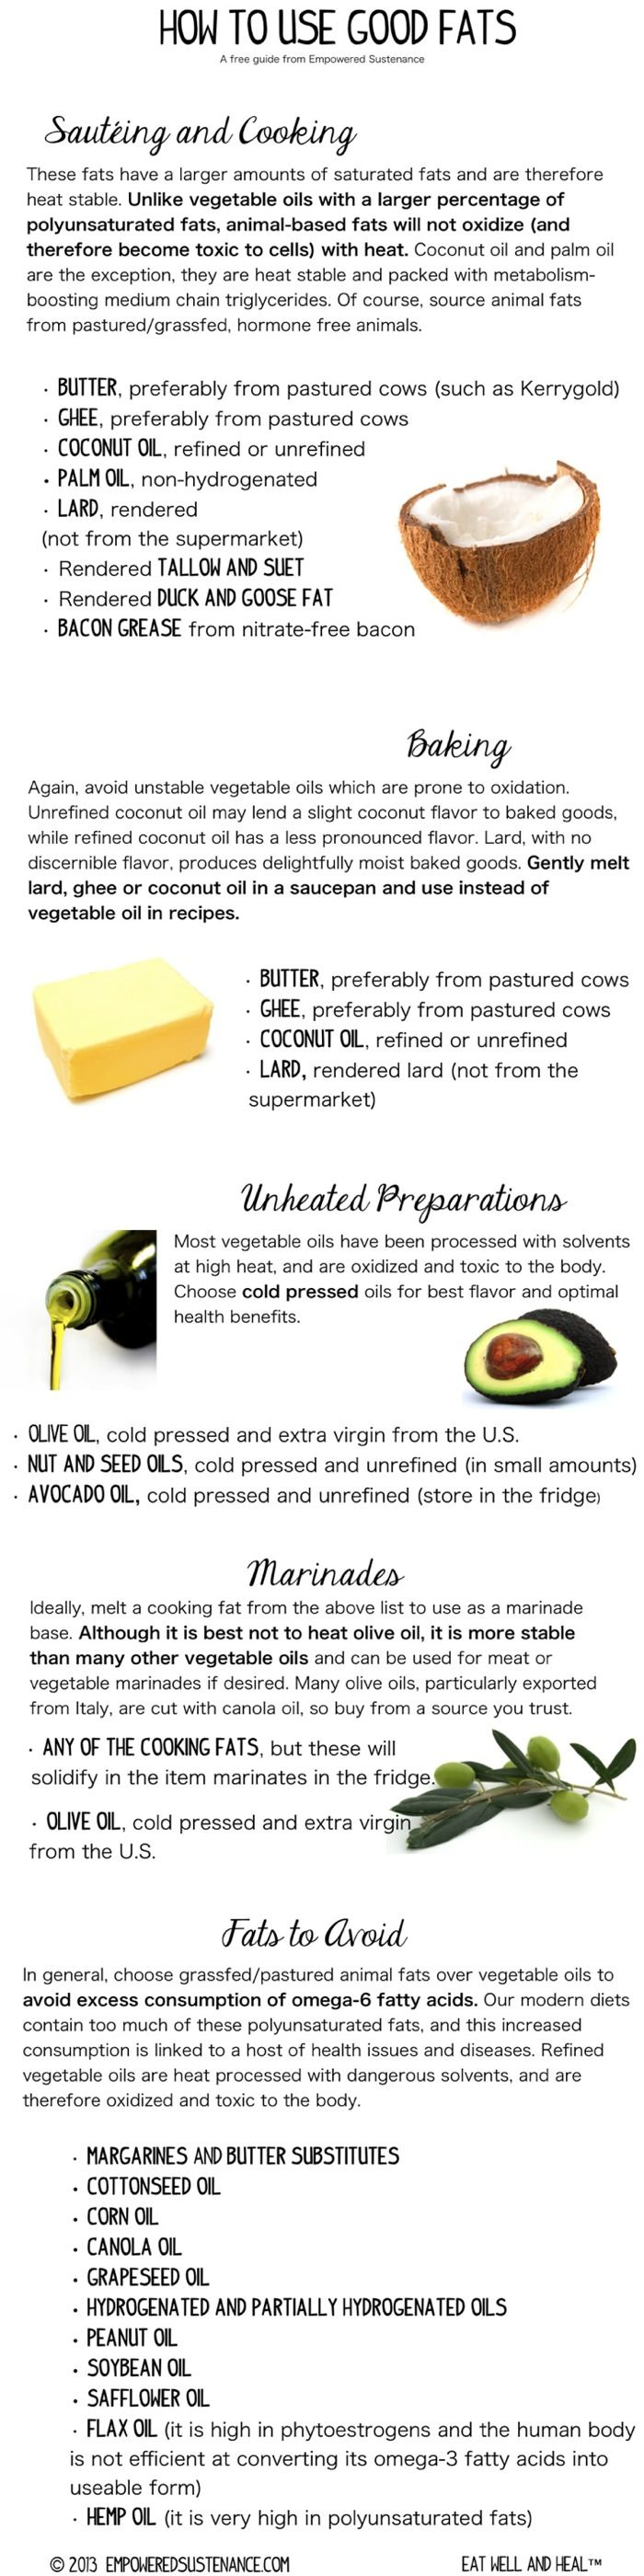 Confused about good fats vs. bad fats? Learn how to choose and properly use good fats while avoiding the bad fats. Includes a free print-out Good Fat Guide.